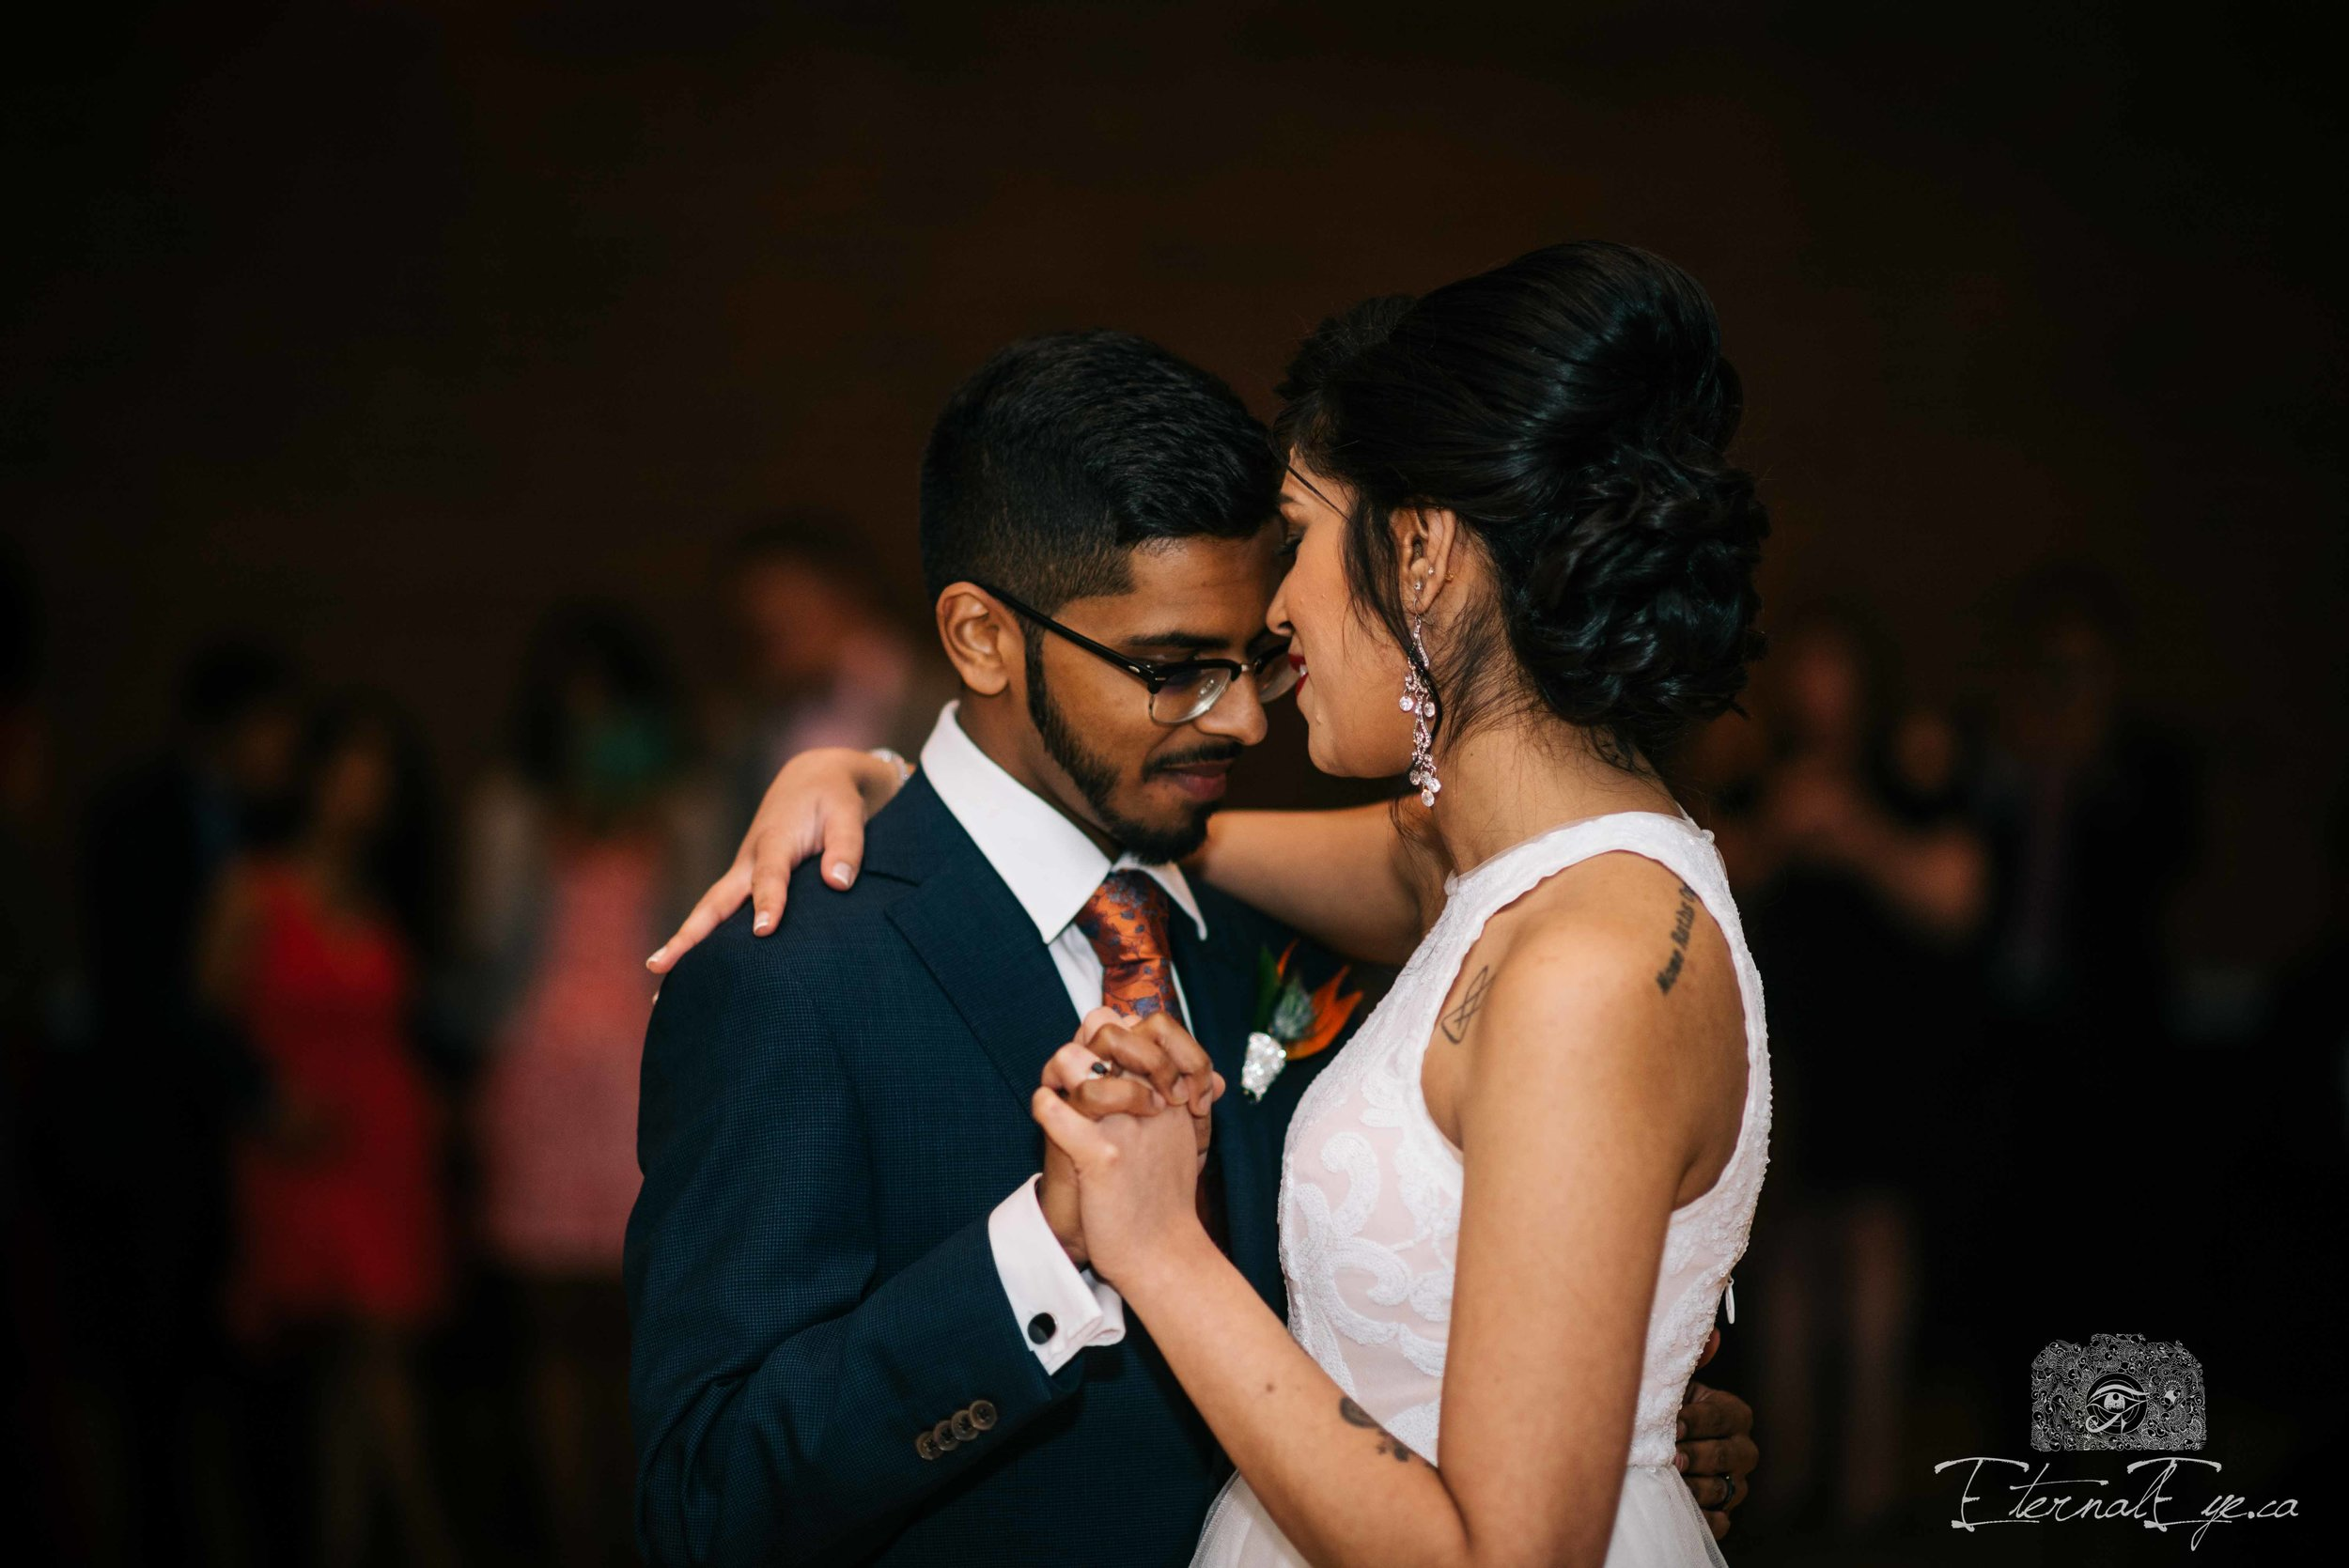 Alyisha and Suraj-April 29, 2017 - 129.jpg